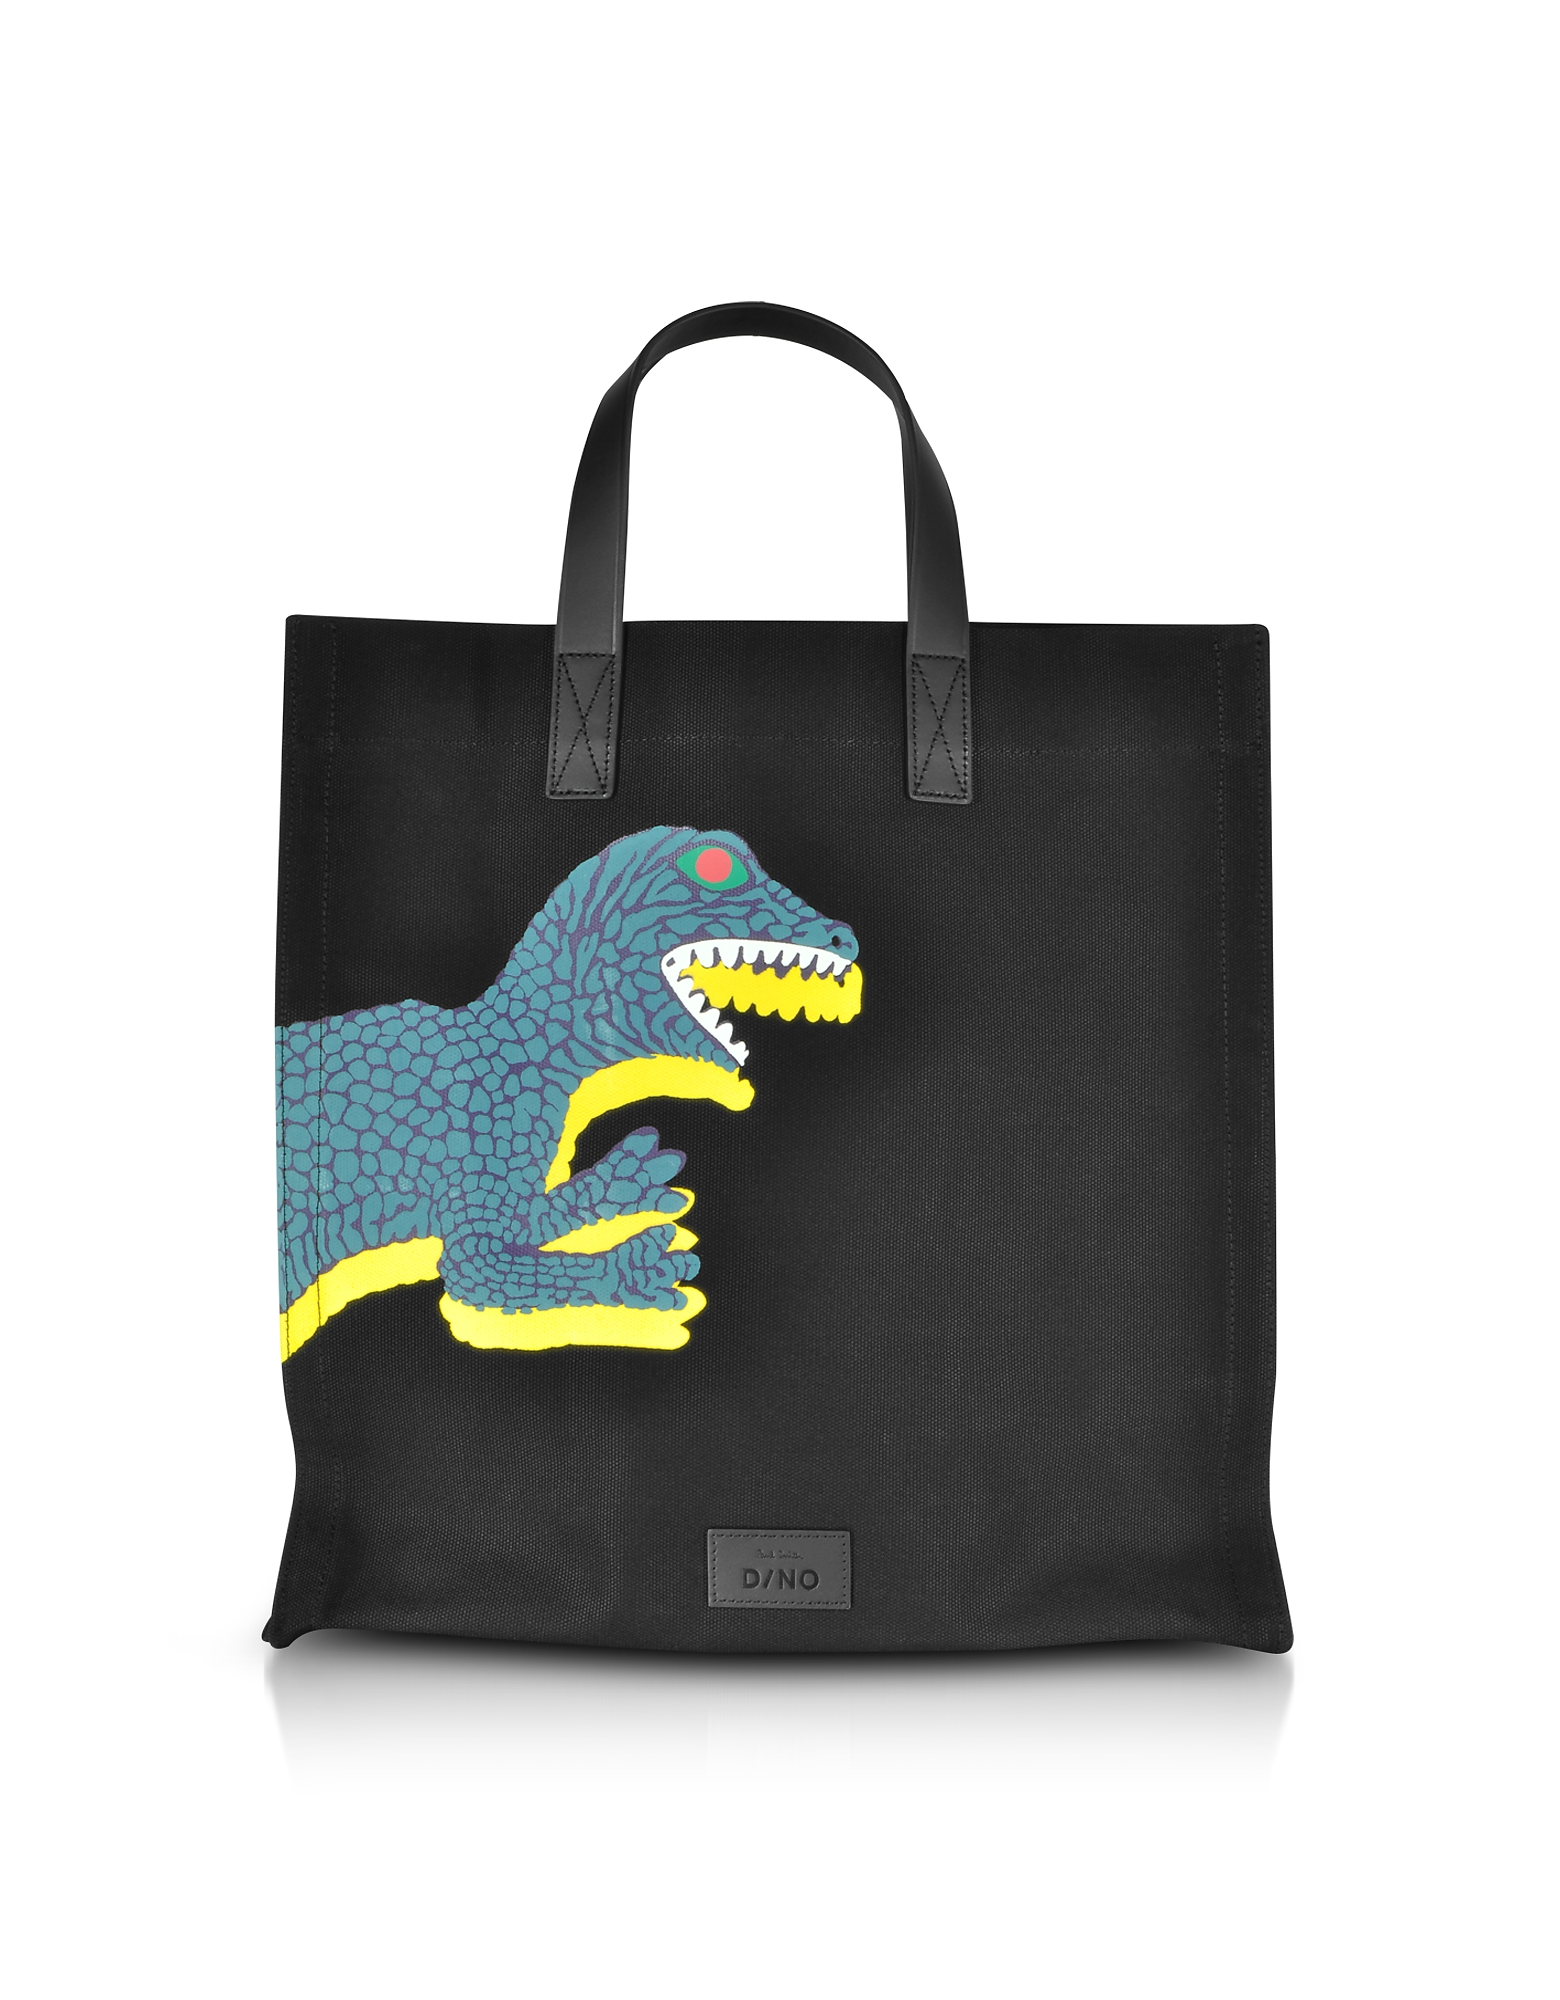 Paul Smith Men's Bags, Black Dino Printed Canvas Tote Bag with Leather Handles